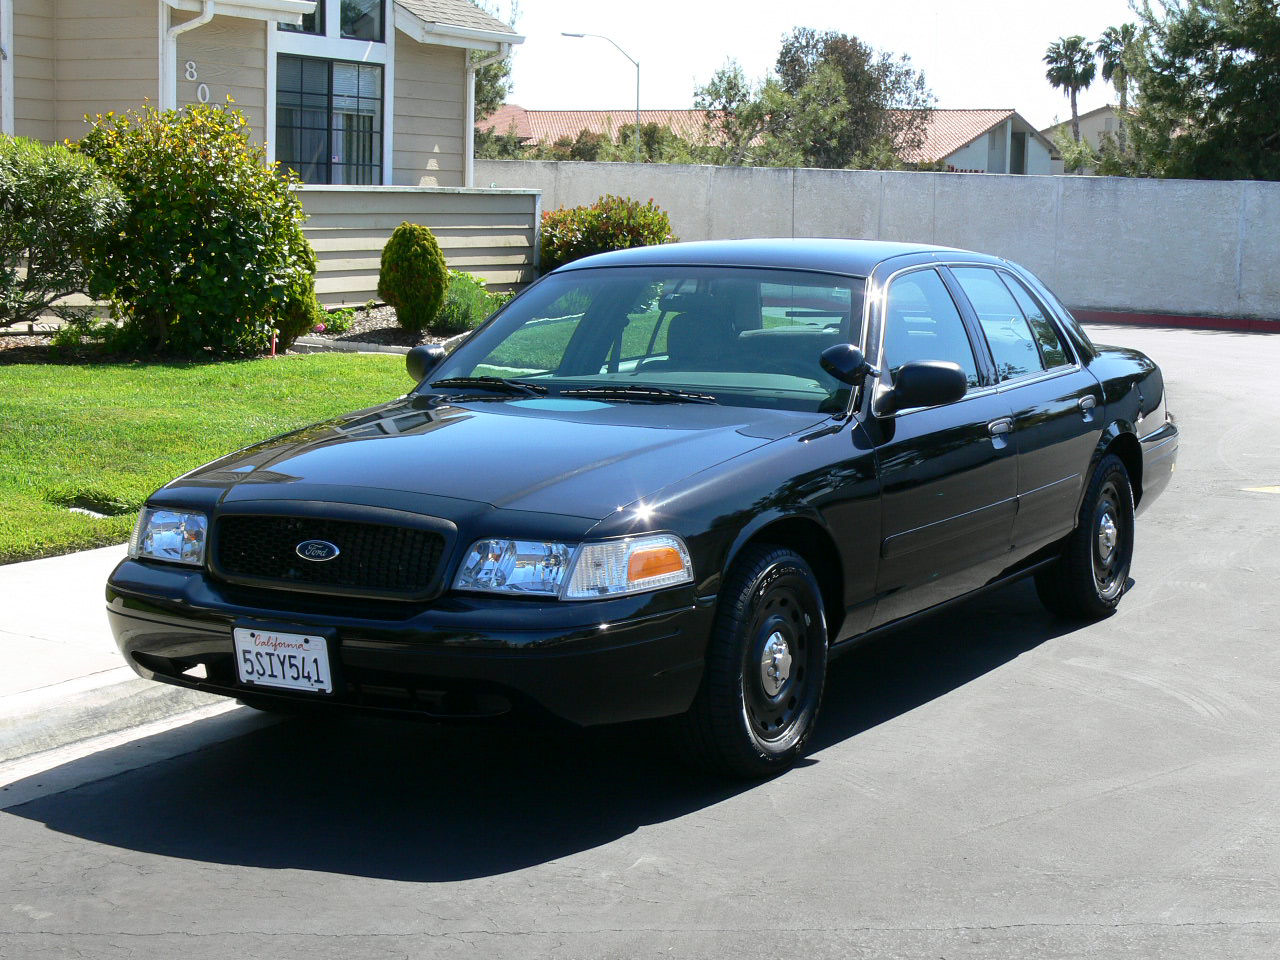 2000 Ford Crown Victoria Other Pictures Cargurus